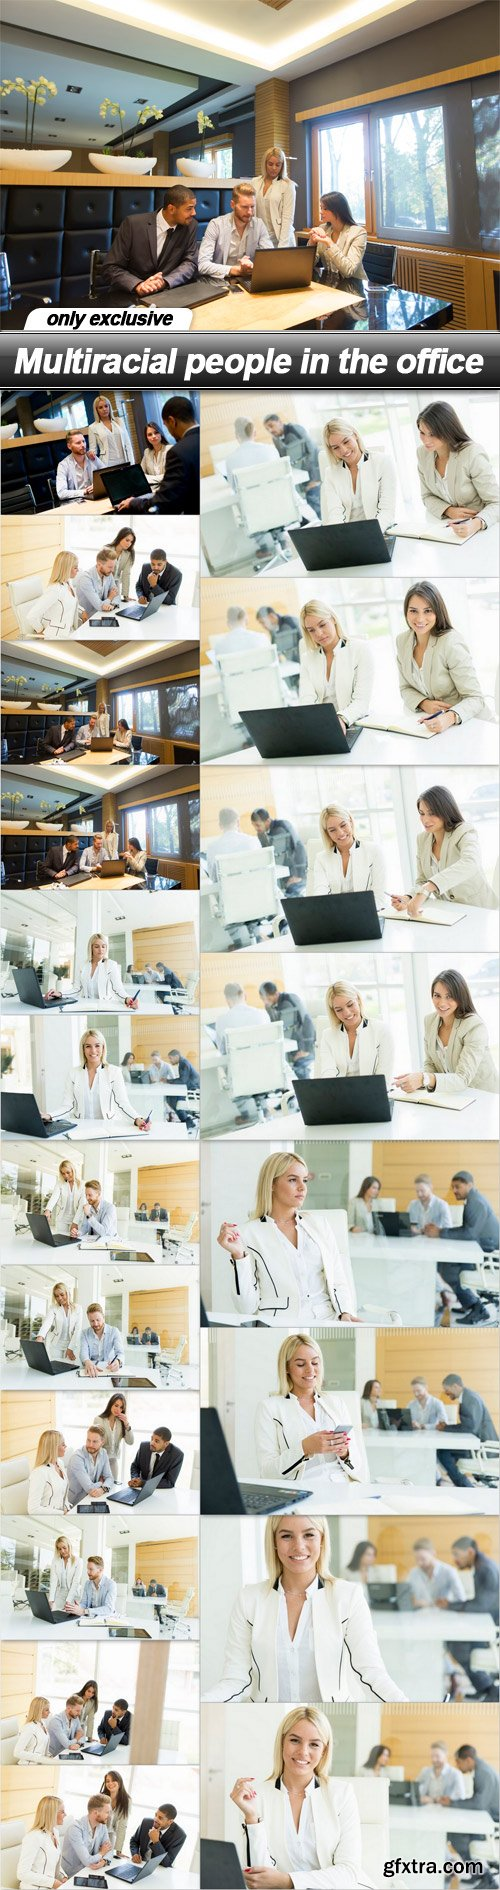 Multiracial people in the office - 20 UHQ JPEG